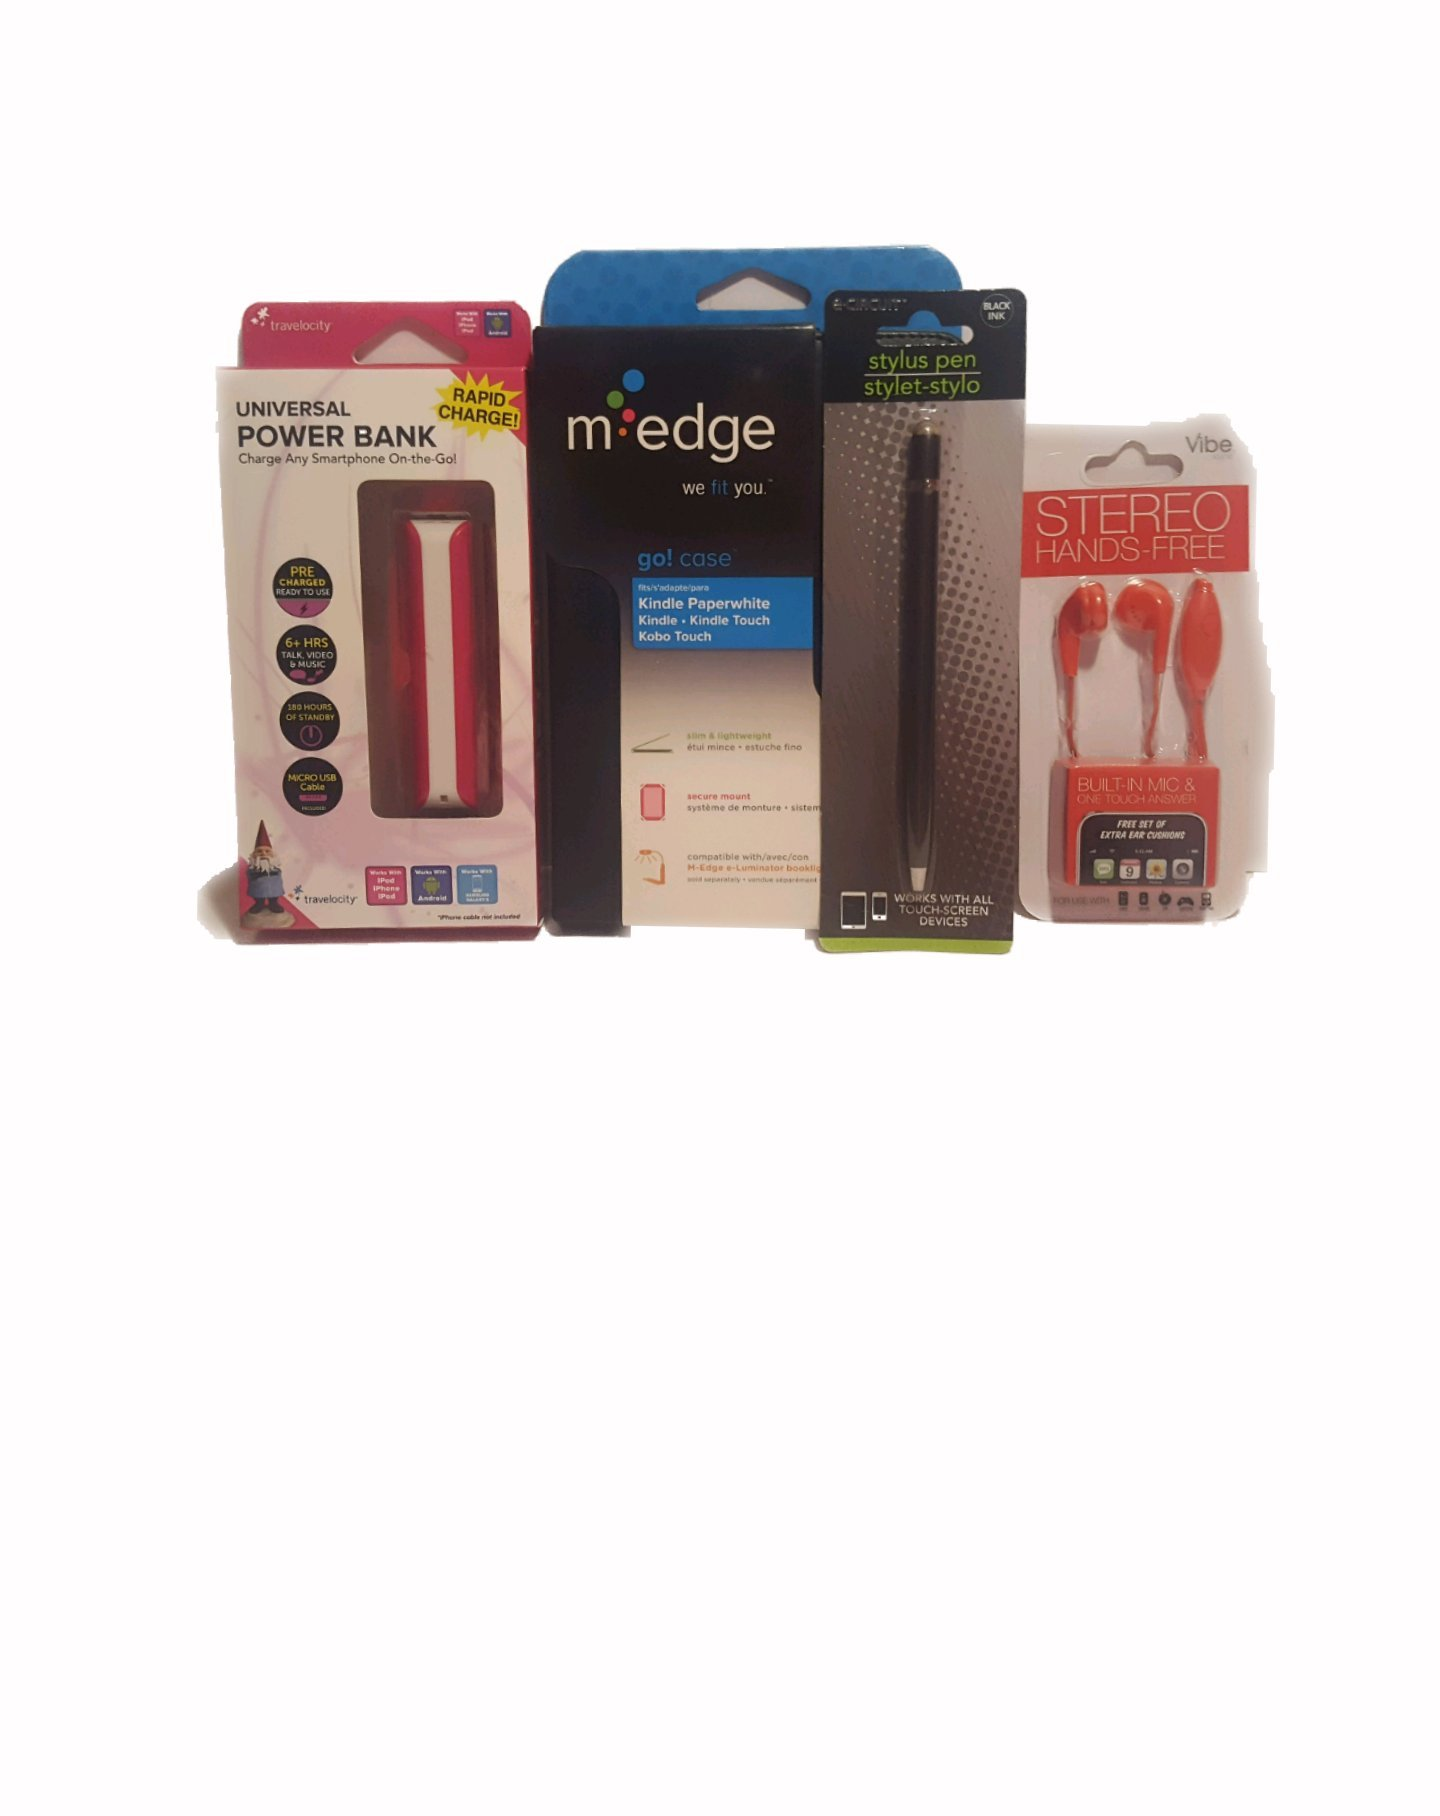 M Edge Kindle Case 4 Piece Bundle Set Stylus Pen, Power Bank Charger, Hands-Free Earphone with Built-in Mic by M Edge Accessories (Image #1)